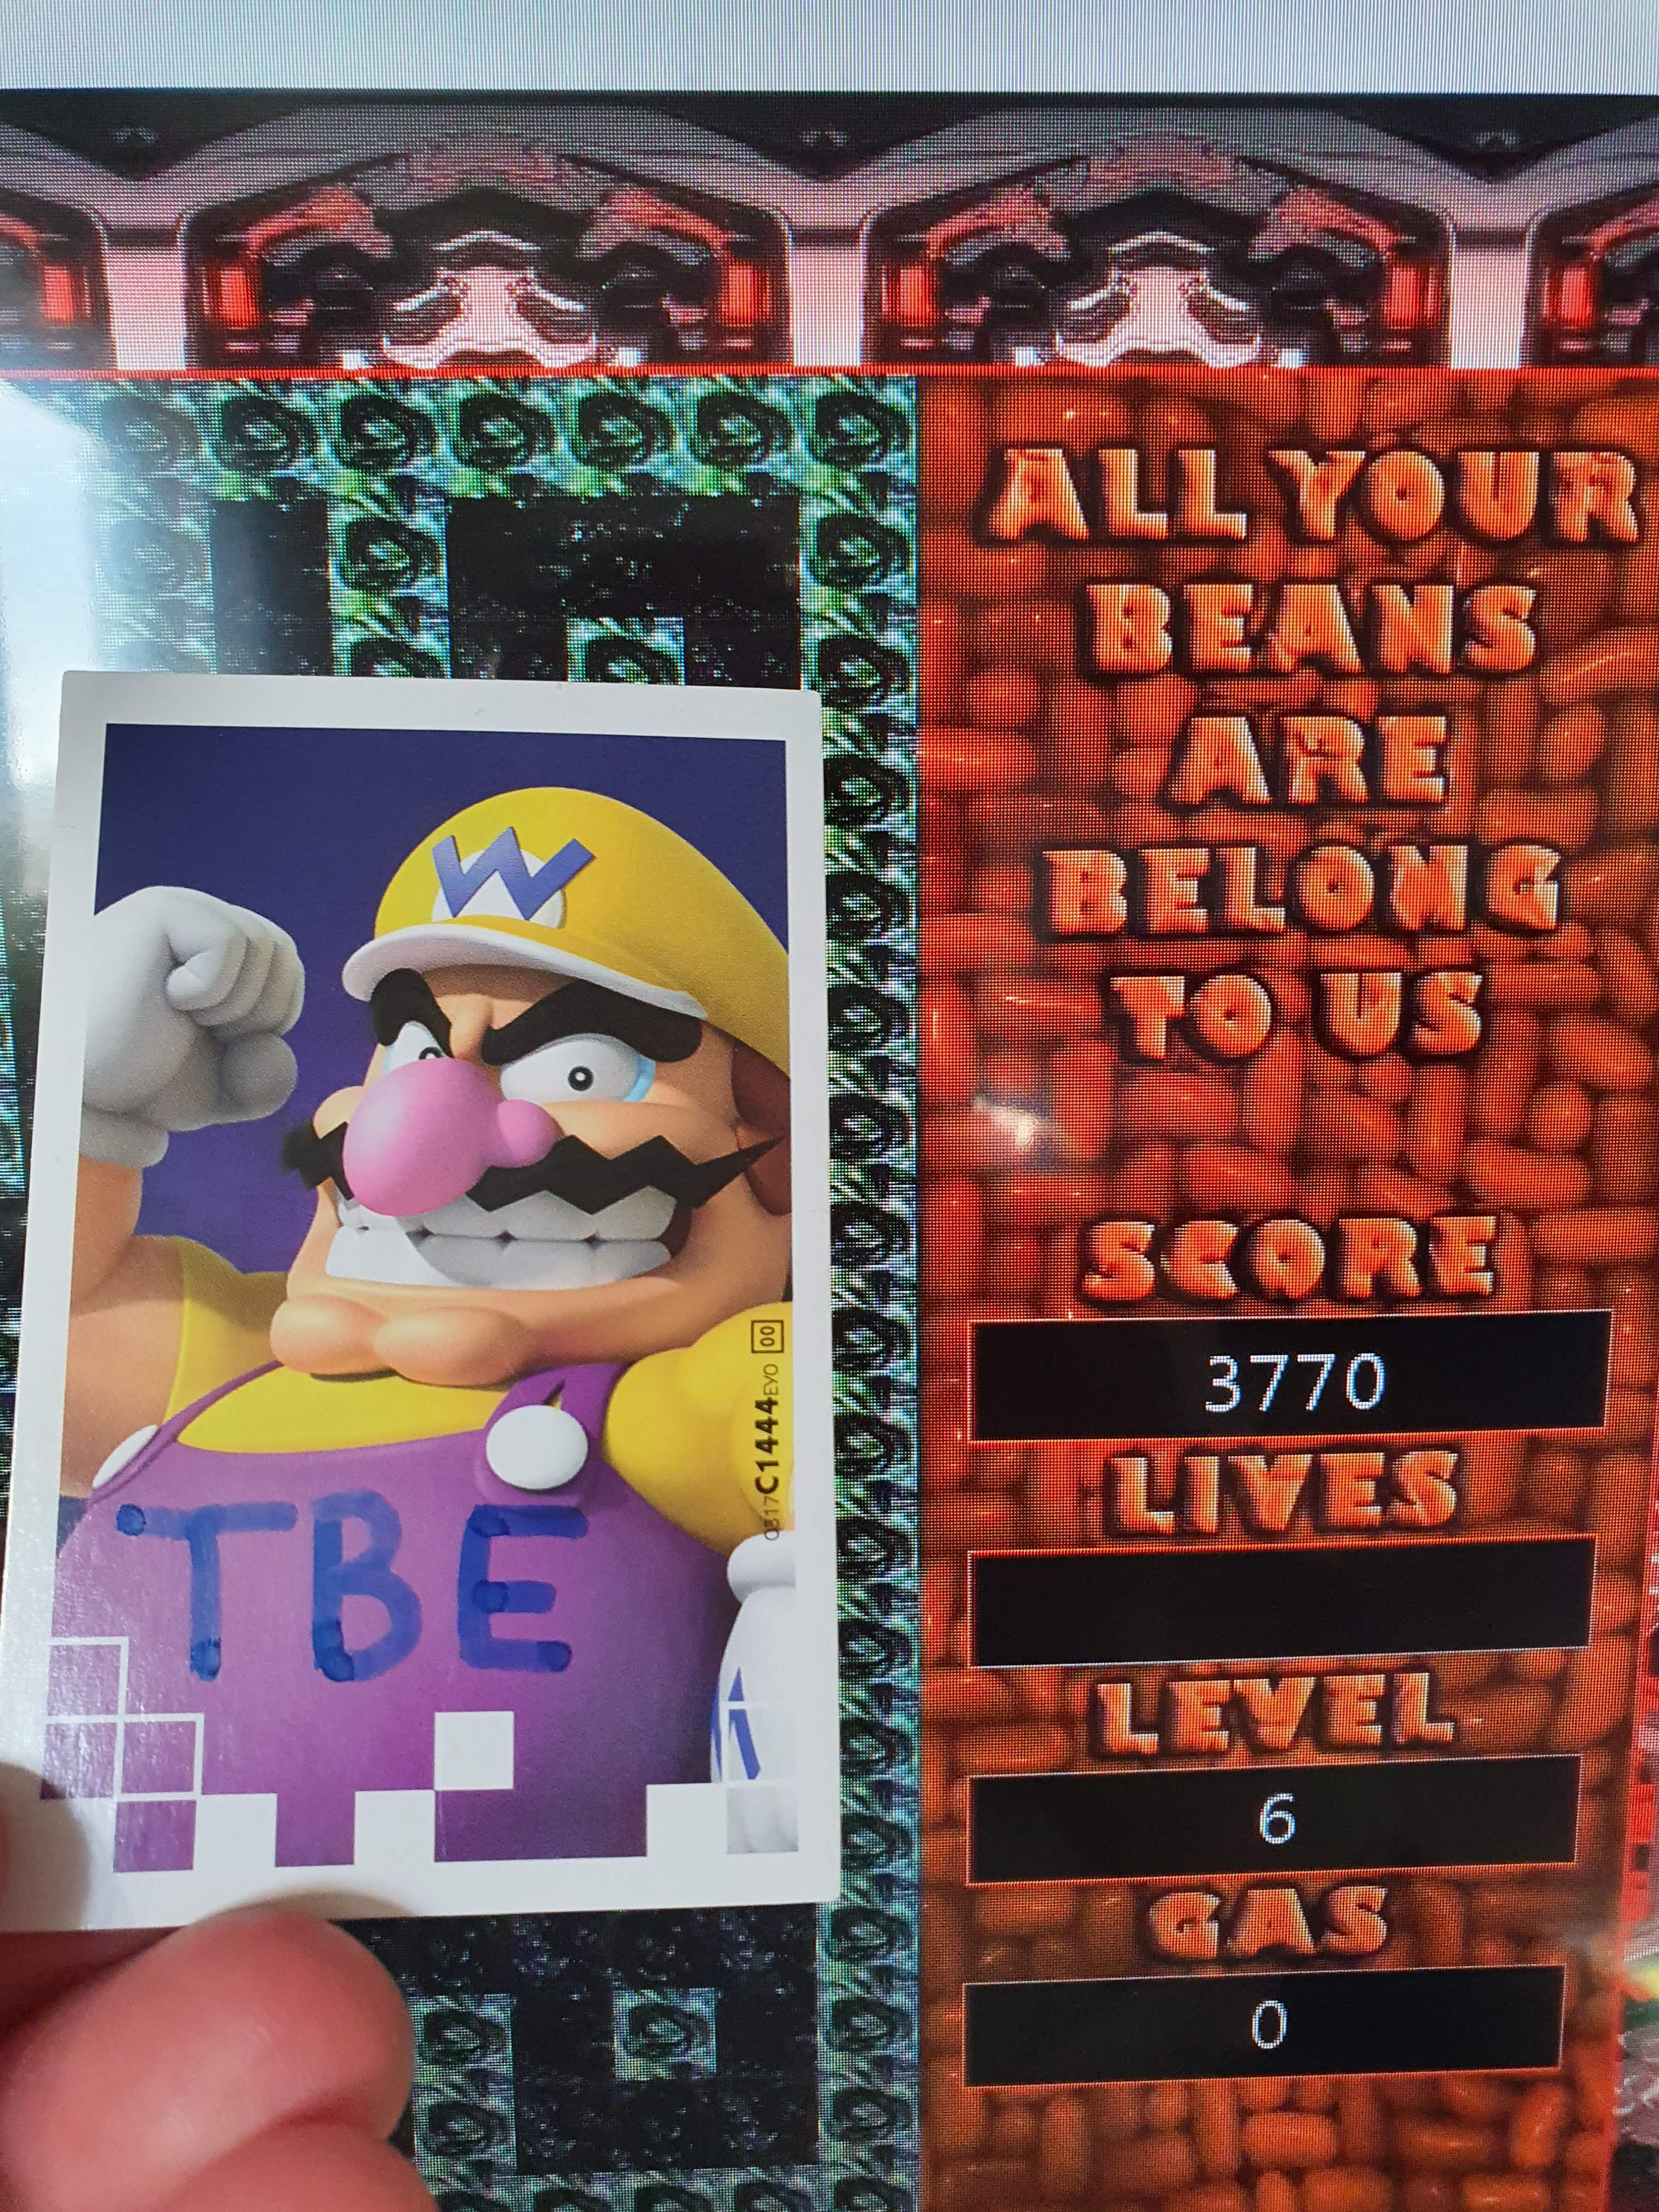 Sixx: 10 Amazingly Awful Games: All Your Beans Are Belong To Us (Xbox 360) 3,770 points on 2020-05-07 01:27:09